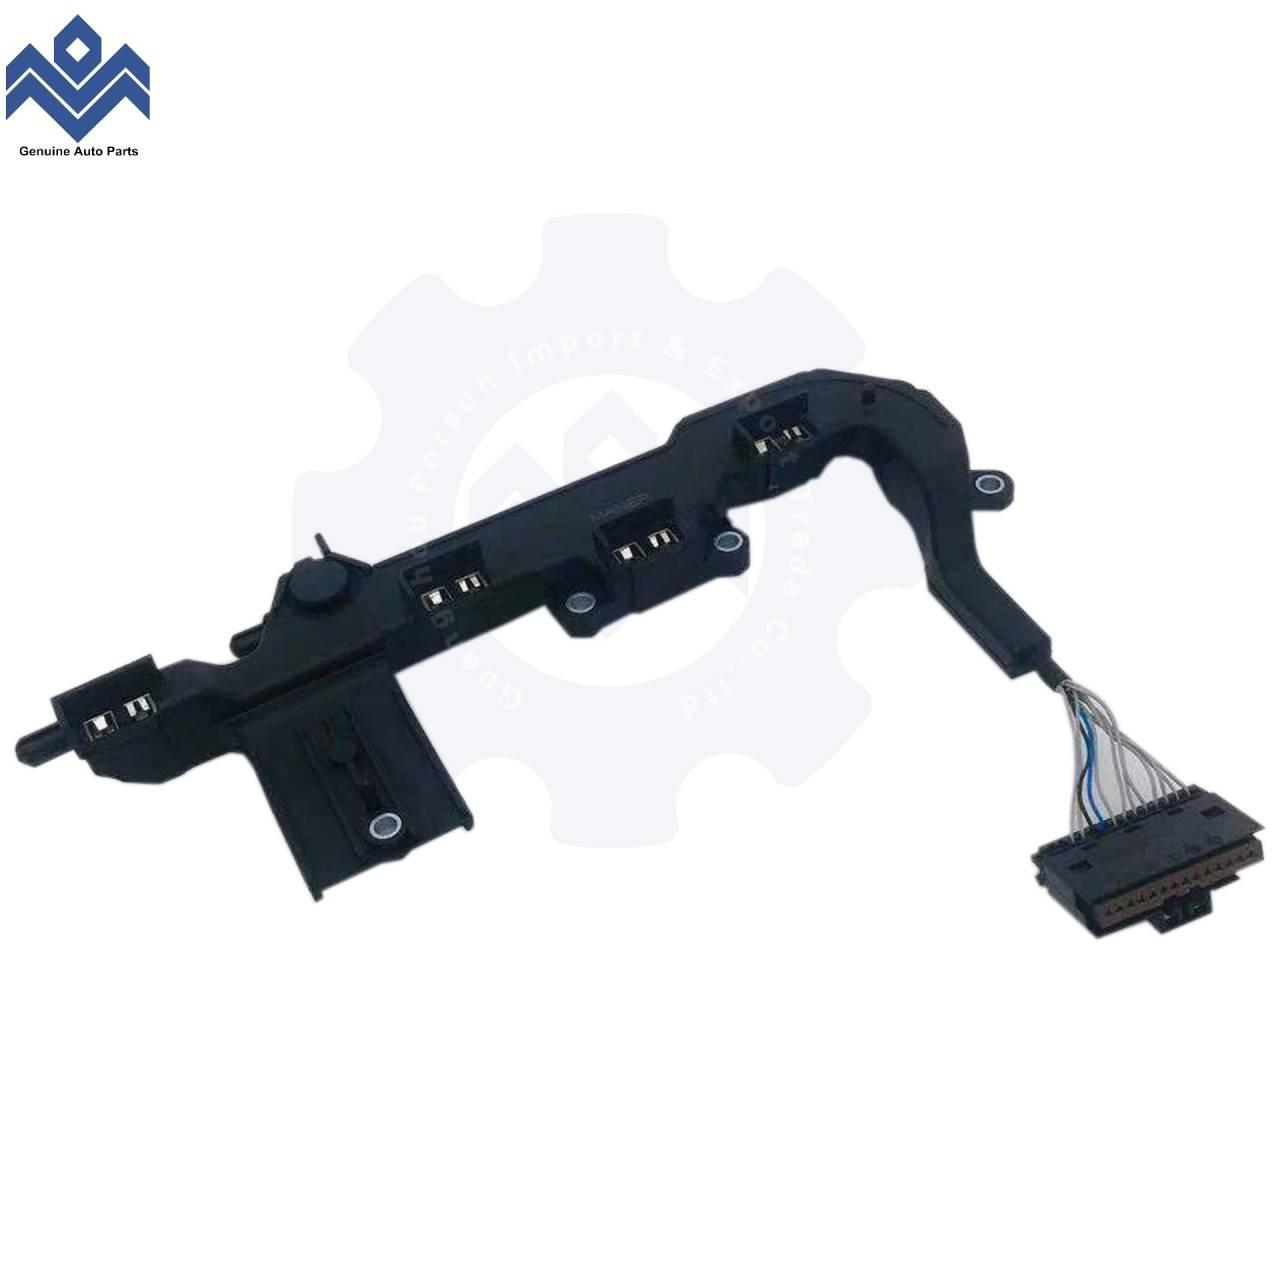 China For Audi VW DSG Automatic Gearbox Wirng Harness Repair Kit 0B5398009E 0B5 398 009 E on sale